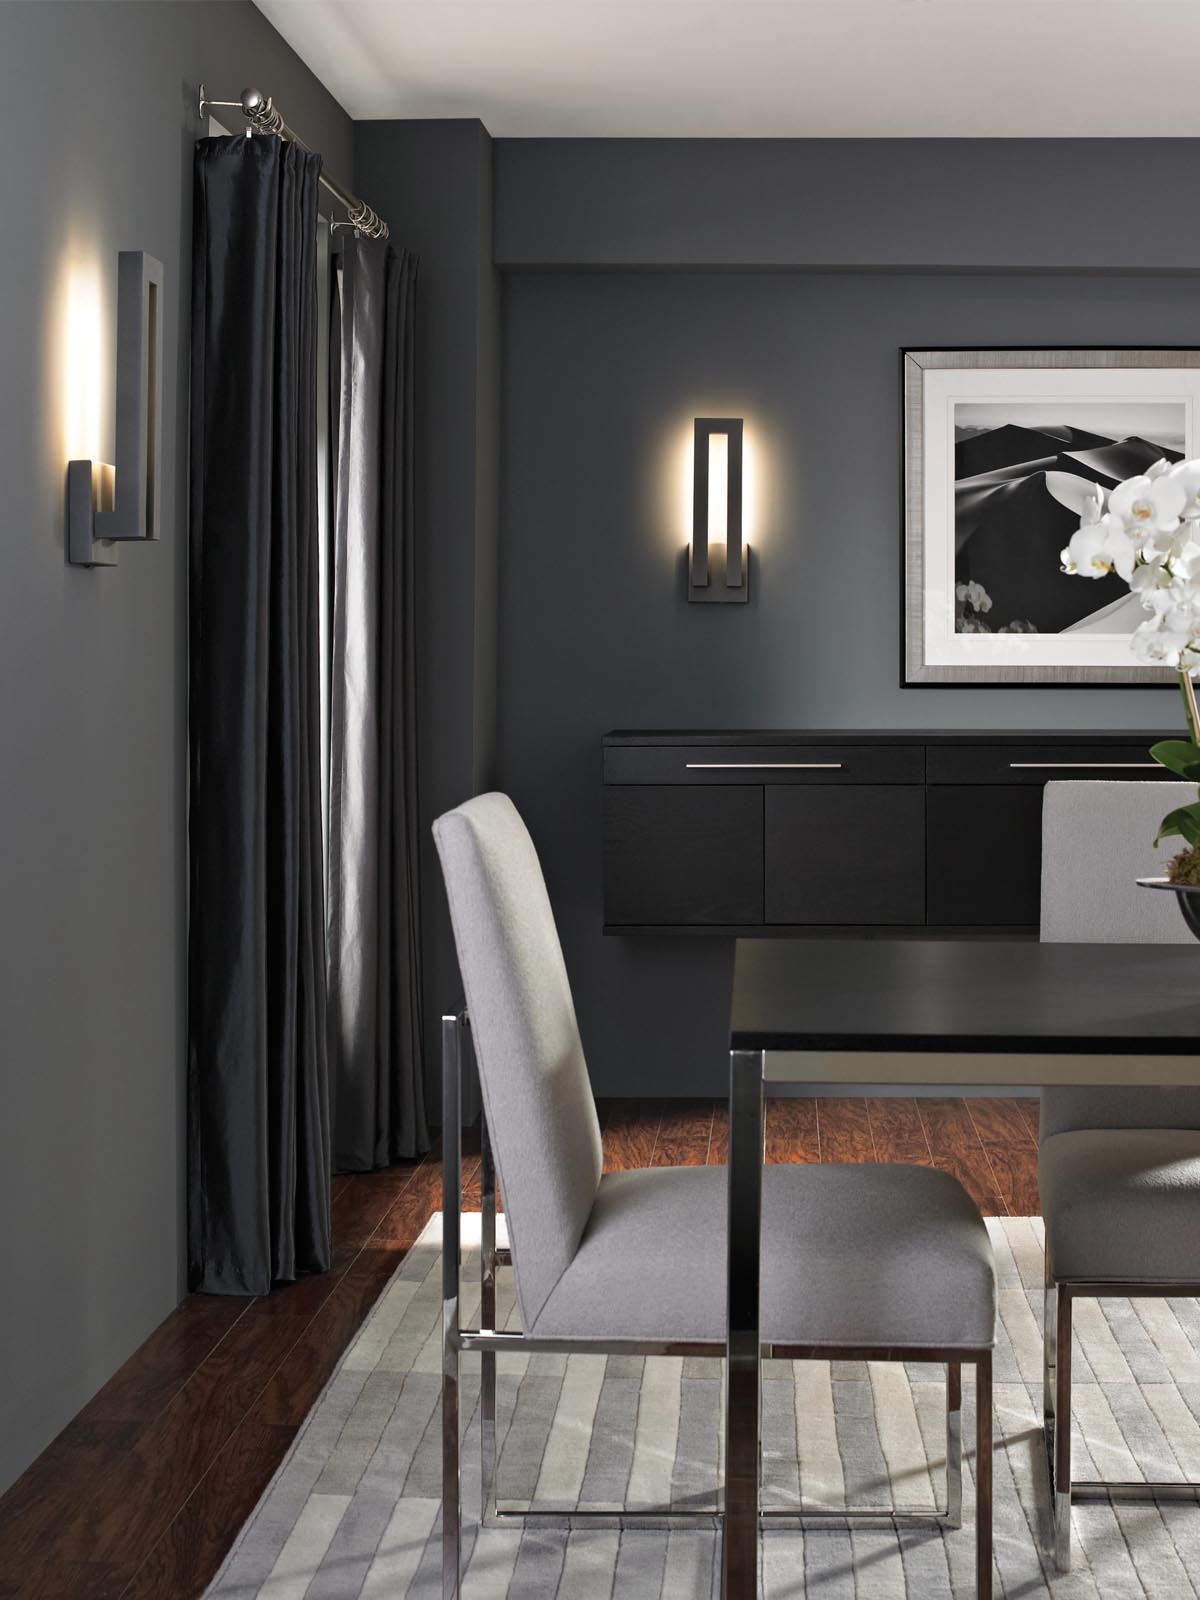 Forq Indoor/Outdoor LED Wall Sconce by Modern Forms ... on Modern Indoor Wall Sconce id=71348